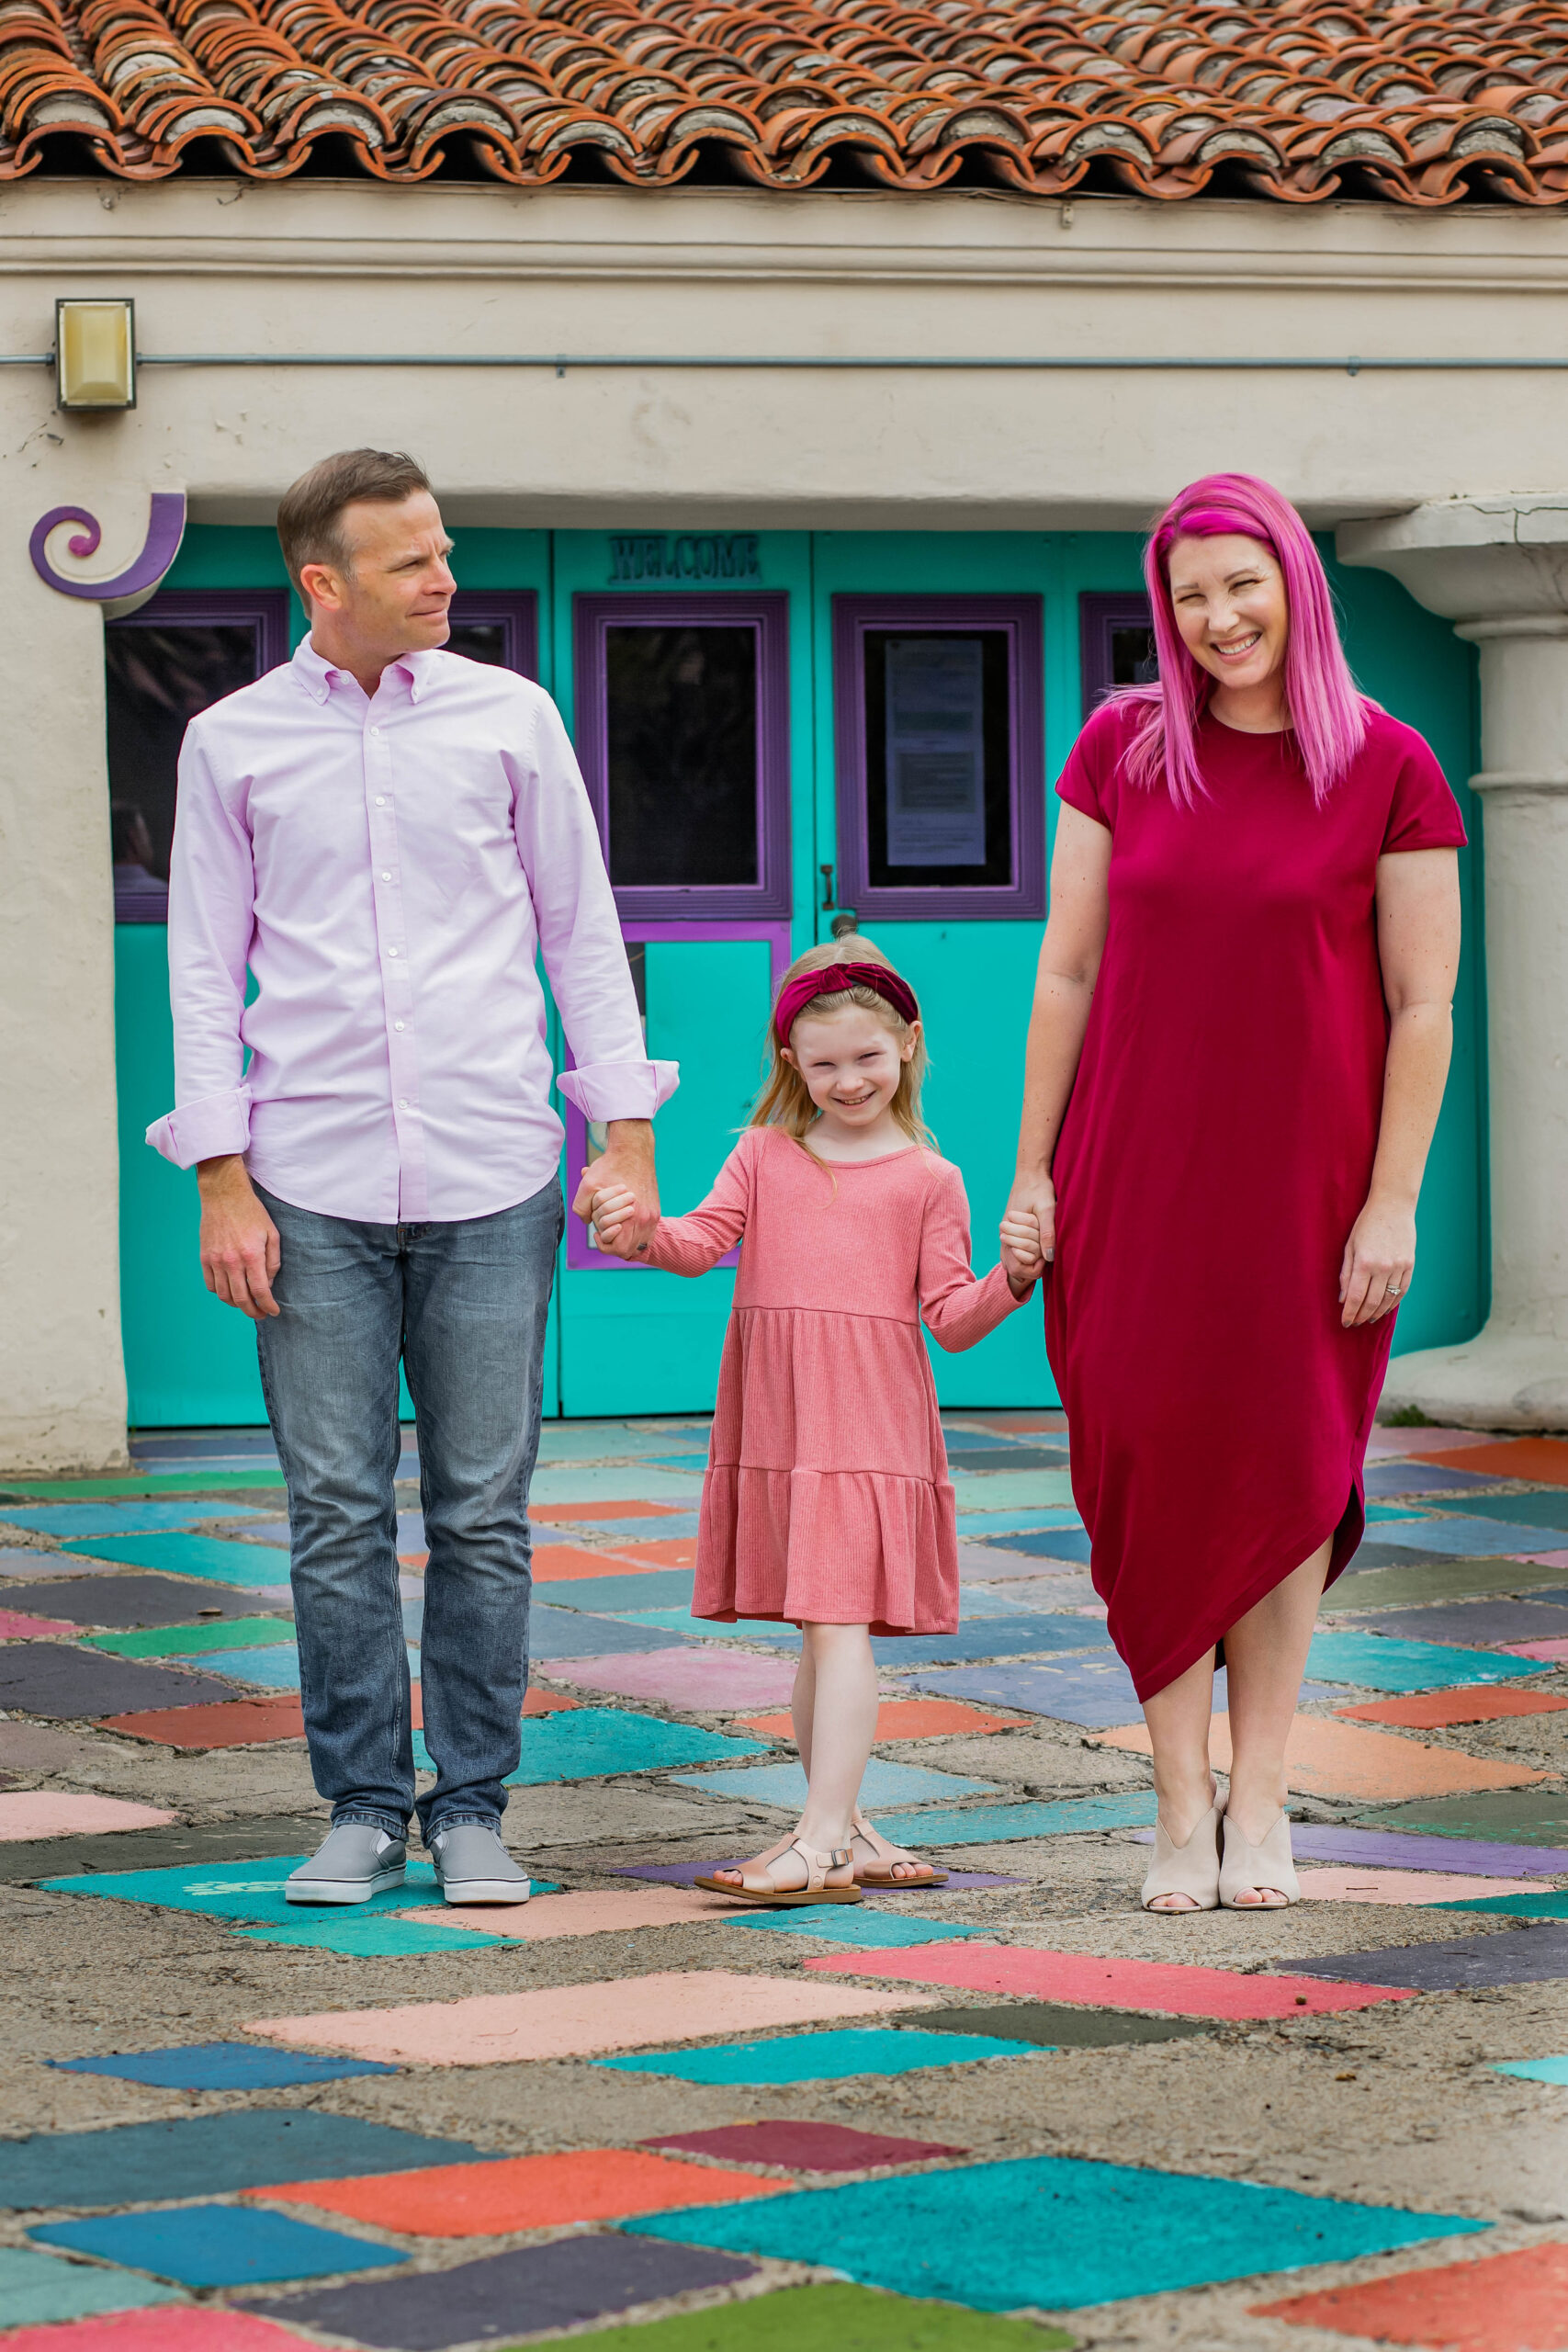 Planning on taking Spring Family Pictures? This is the ultimate guide to planning family photos for this fun time of year!